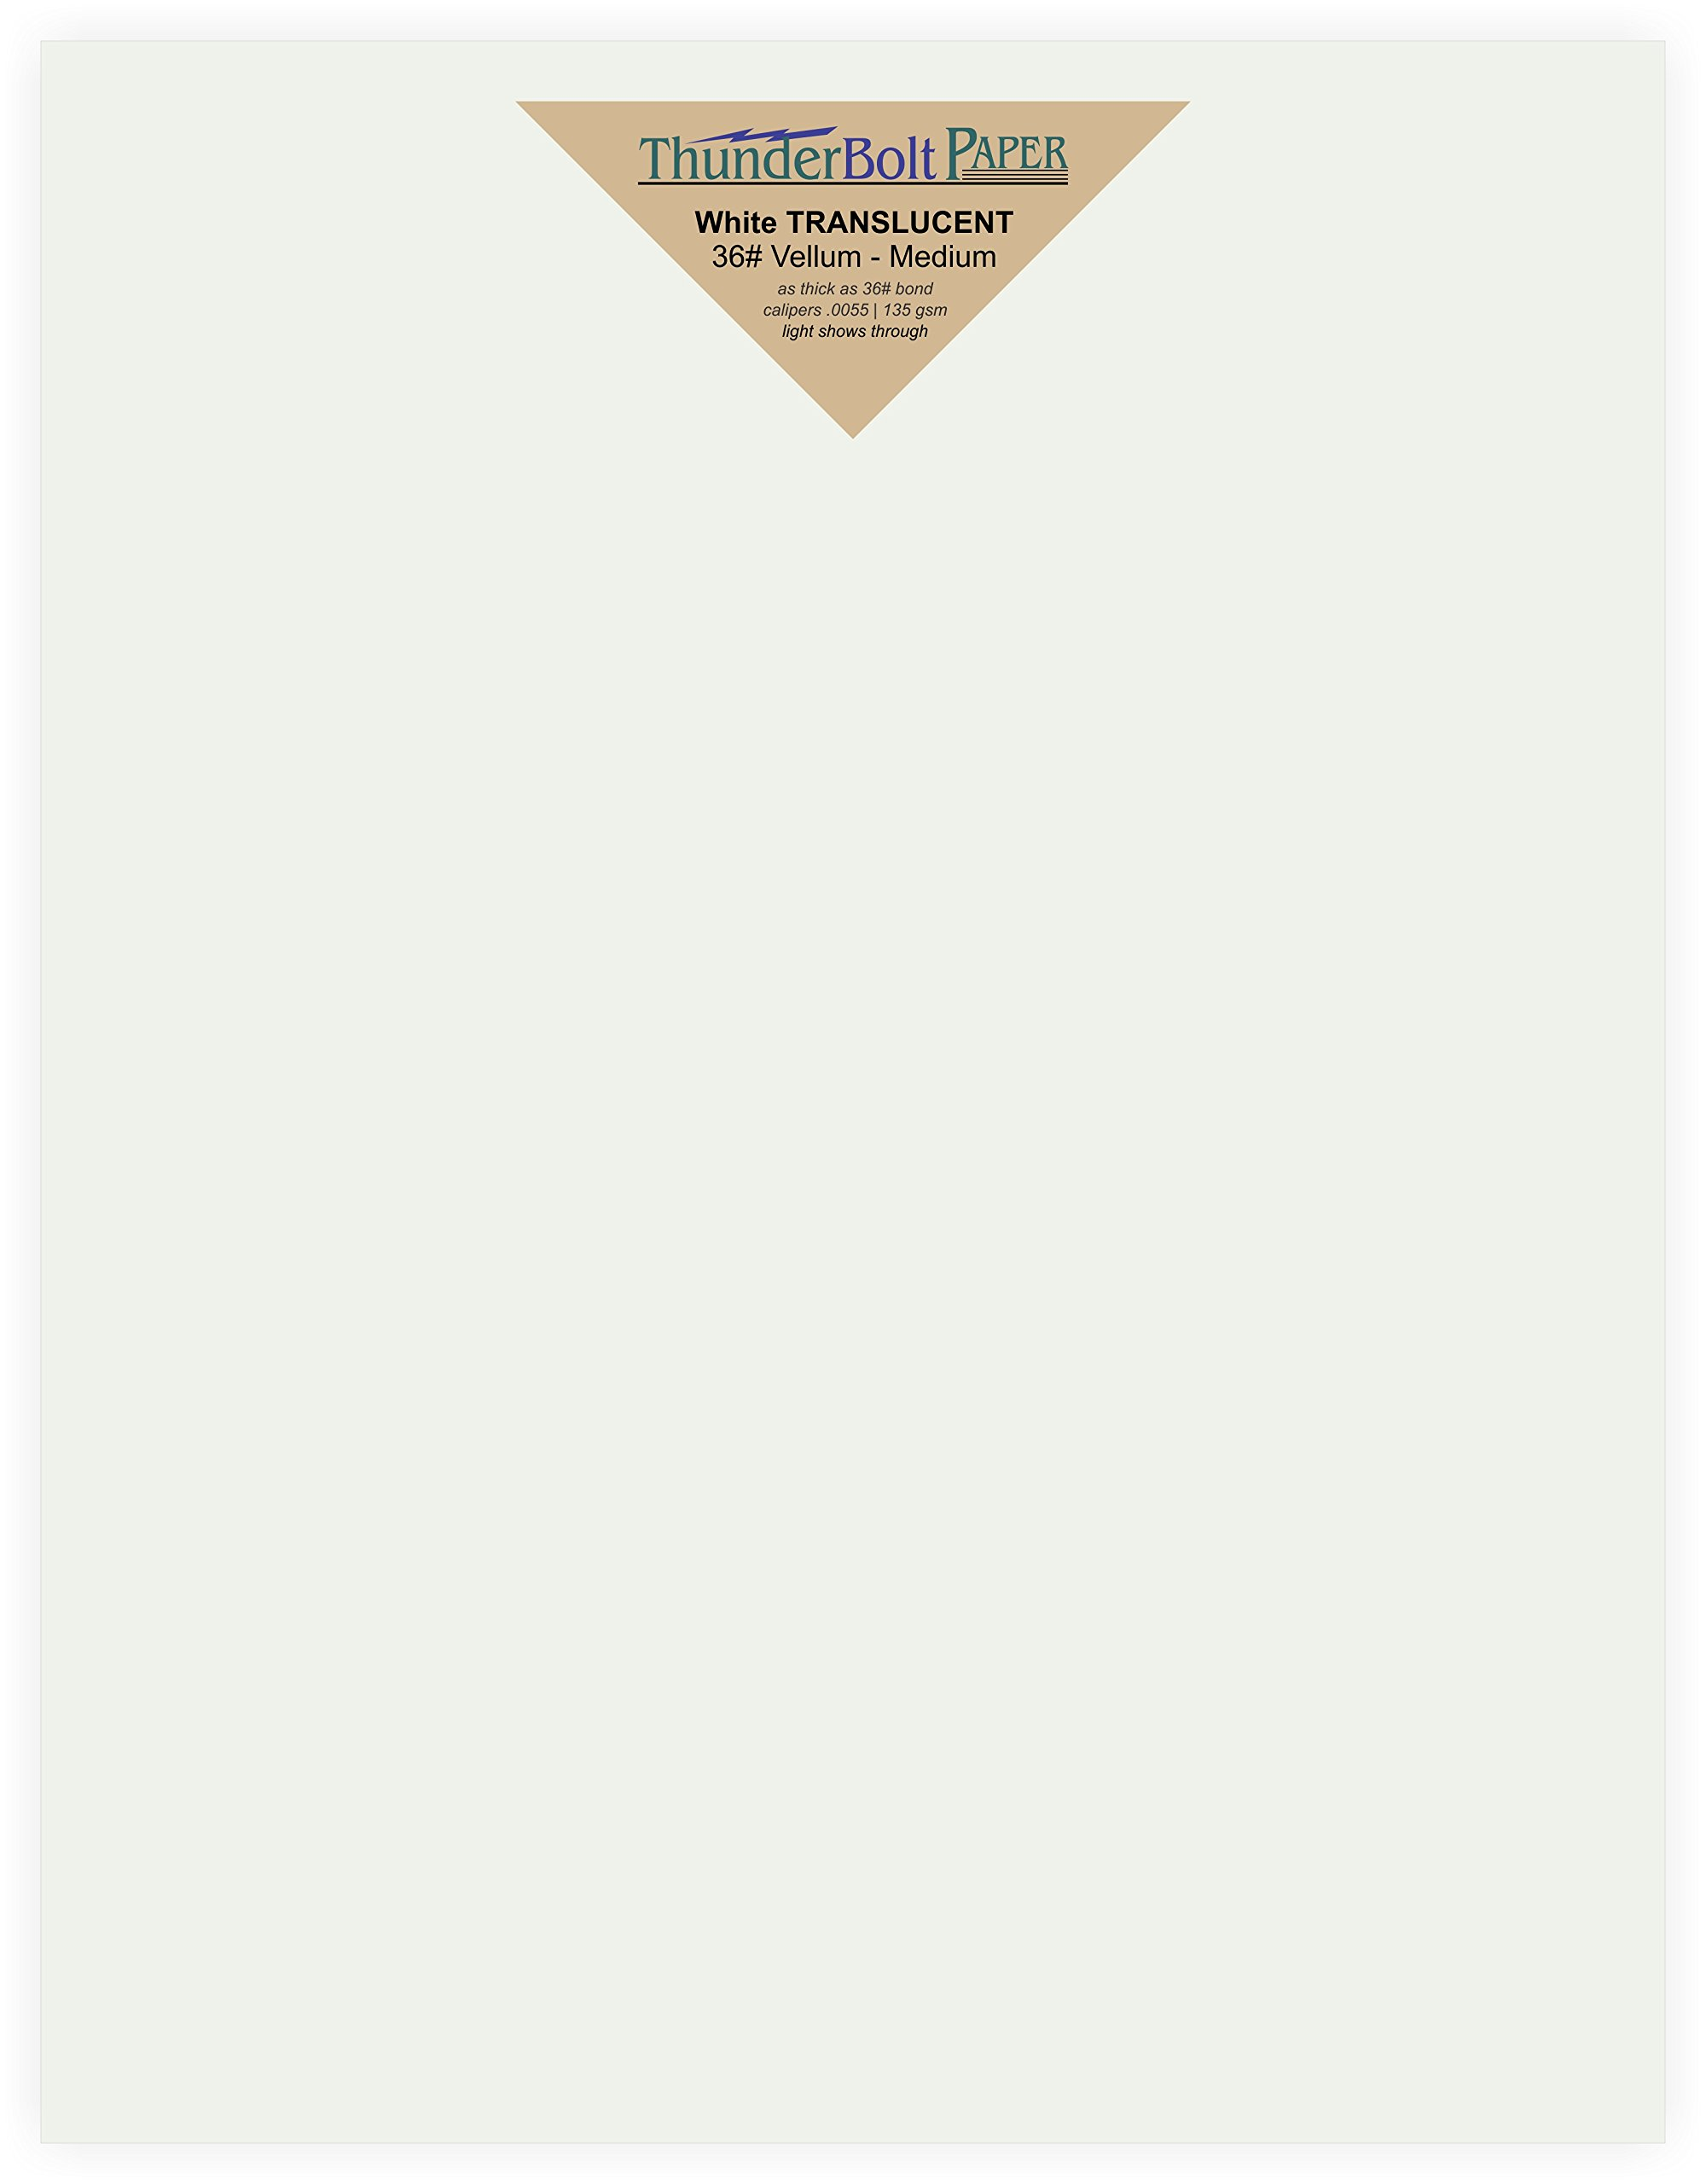 150 Soft White Translucent - 36# (36 lb/Pound) Medium Thick - 8.5 X 11 inches Letter Size - Heavier Weight Vellum Sheets Quality Paper for Fine Results - Fun|Formal - Not a Clear Transparent